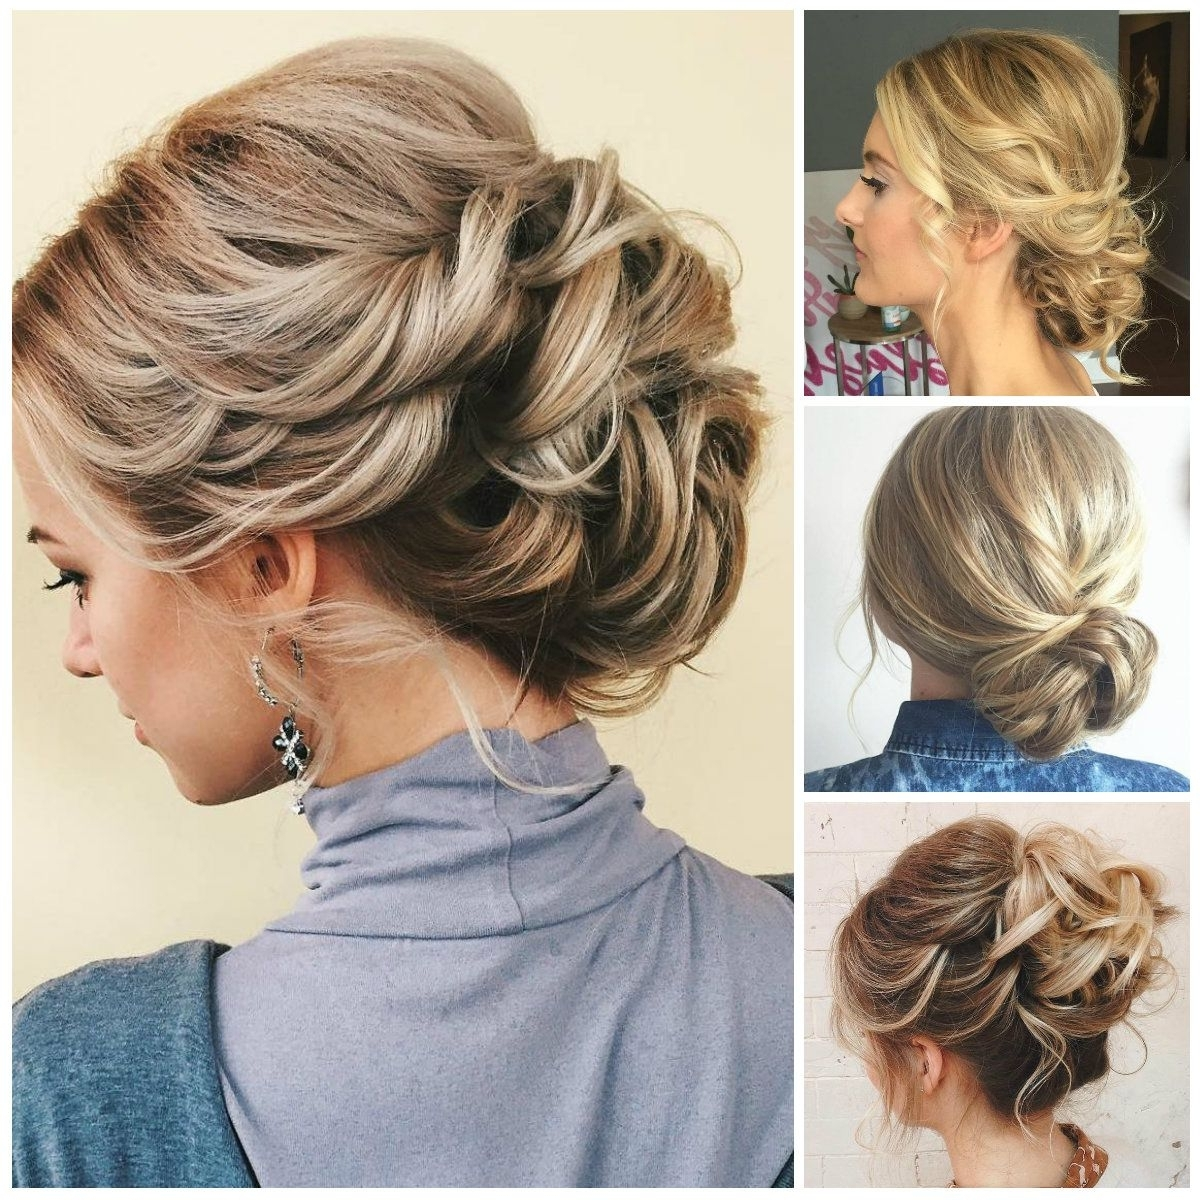 Image Result For Upstyles 2017 | Upstyles Wedding | Pinterest | Thin With Regard To Updos For Fine Short Hair (View 13 of 15)